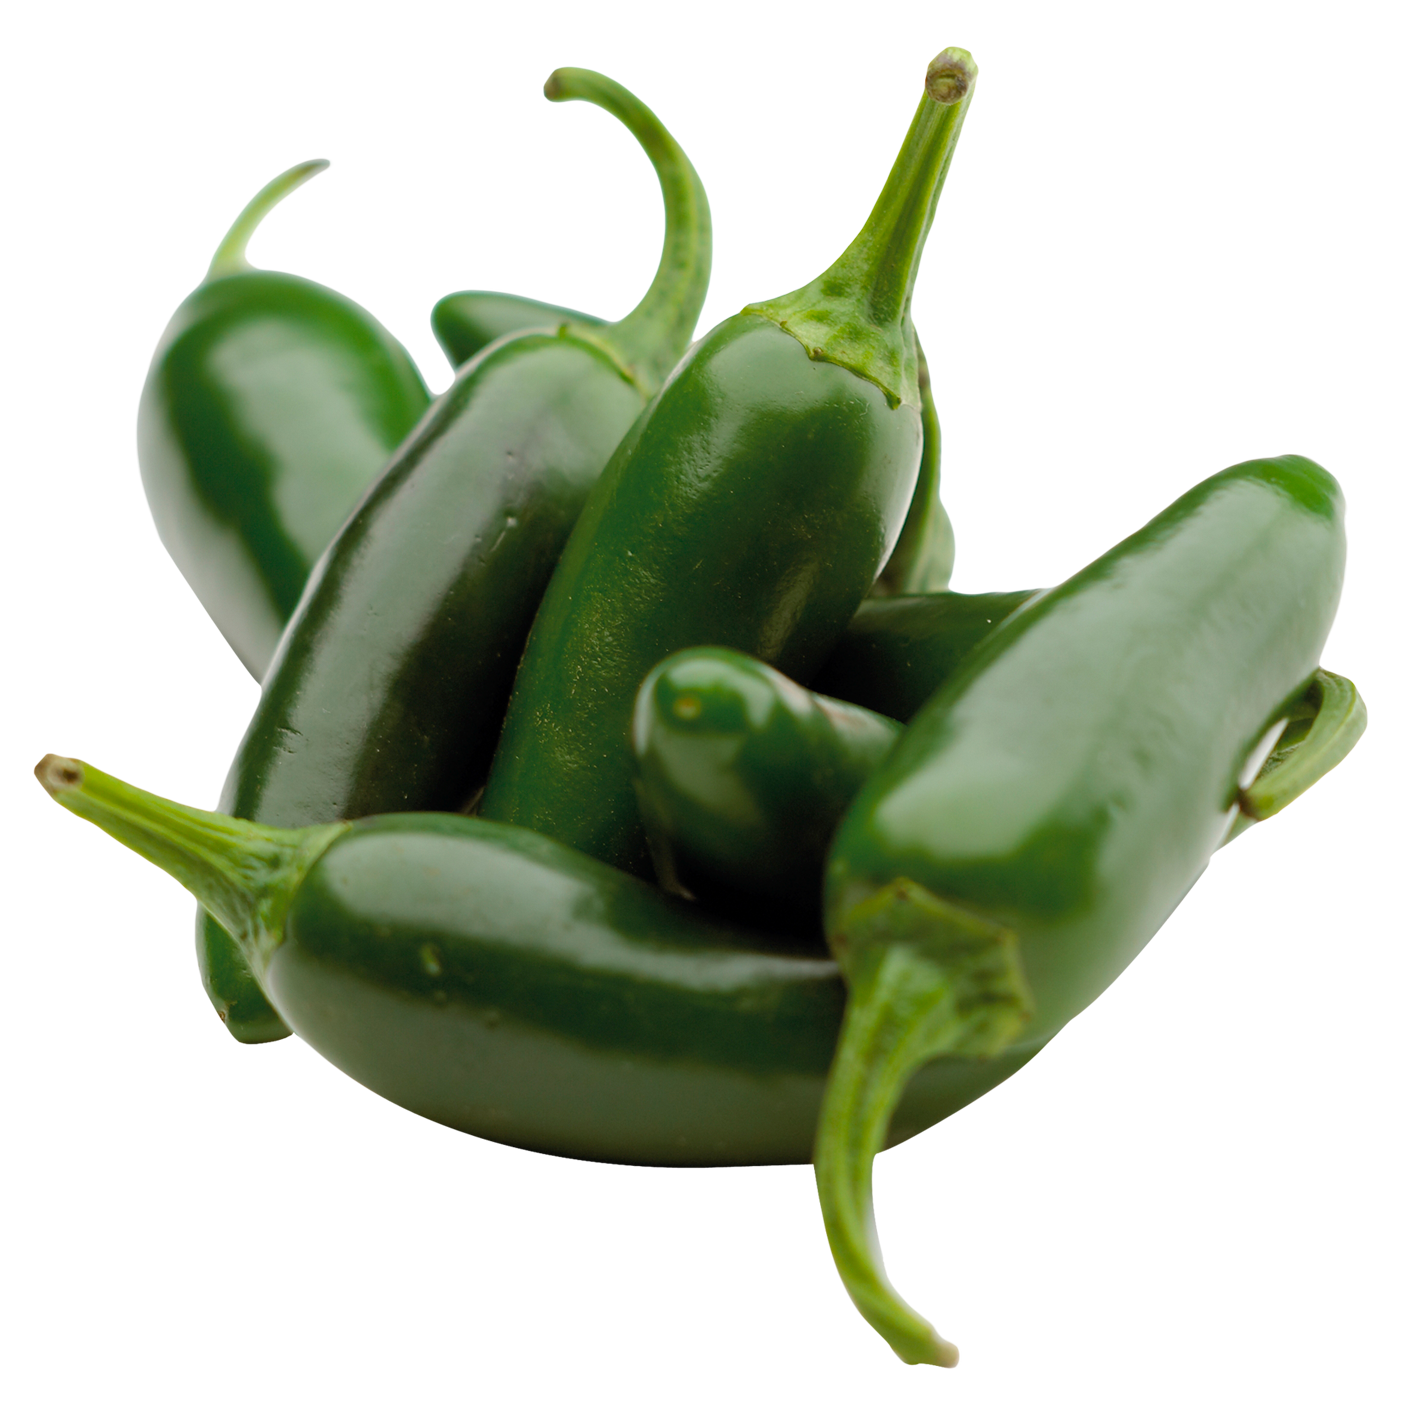 Green Chili Pepper PNG Image